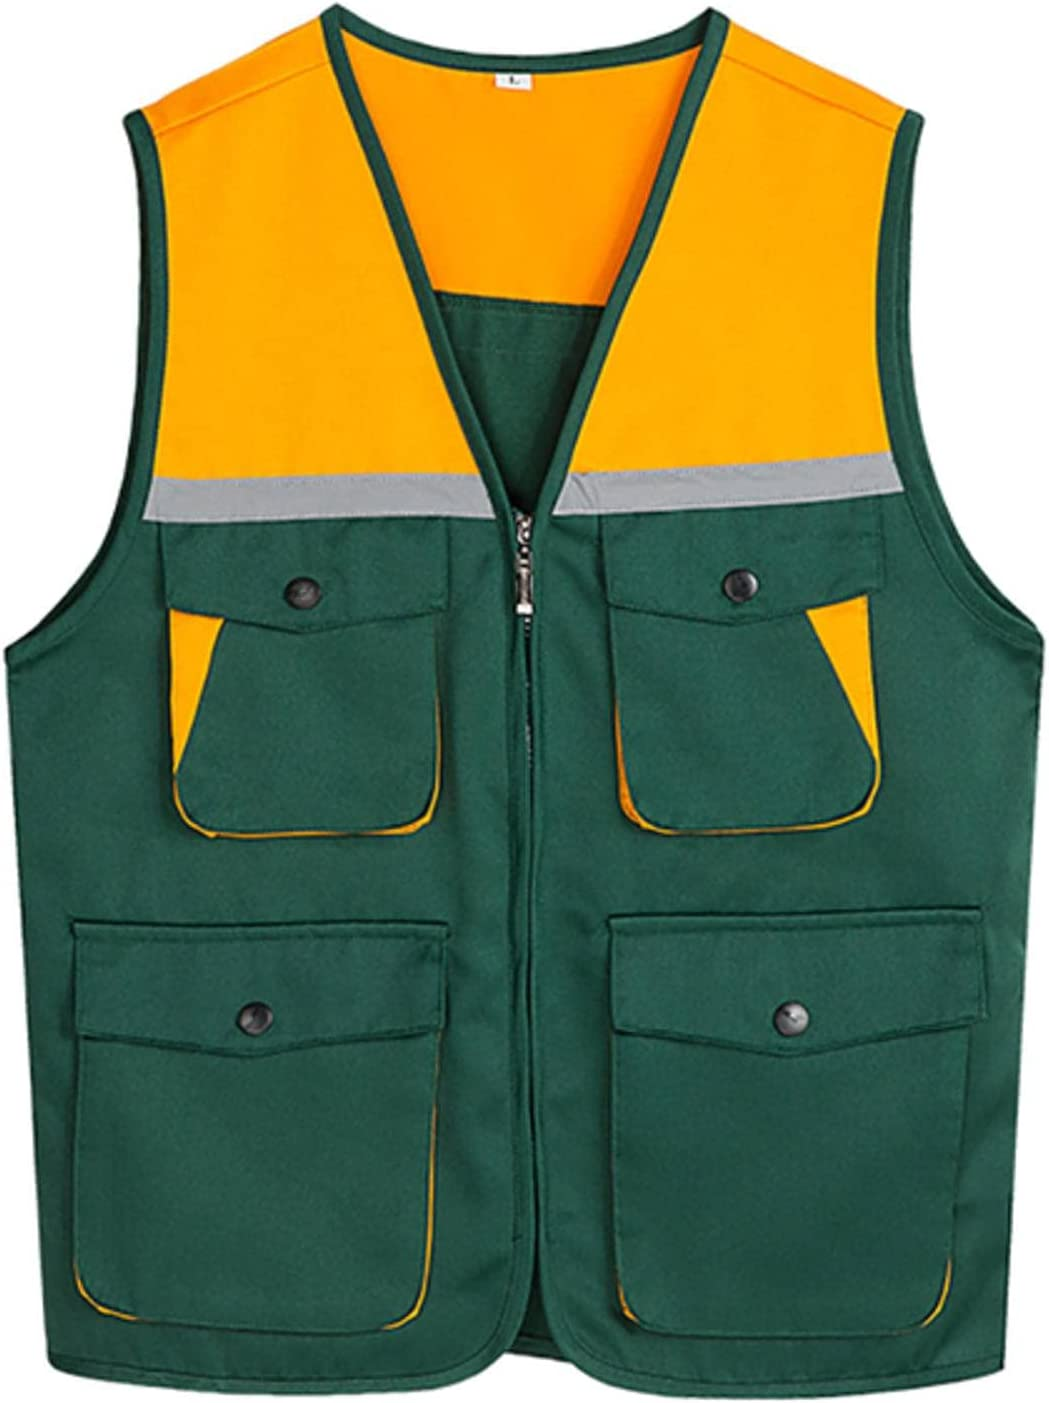 NC Outdoor Reflective Vest Men's Cycling Breathable Color Matching Multi-Pocket Reflective Cycling Vest PRO Safety G9002